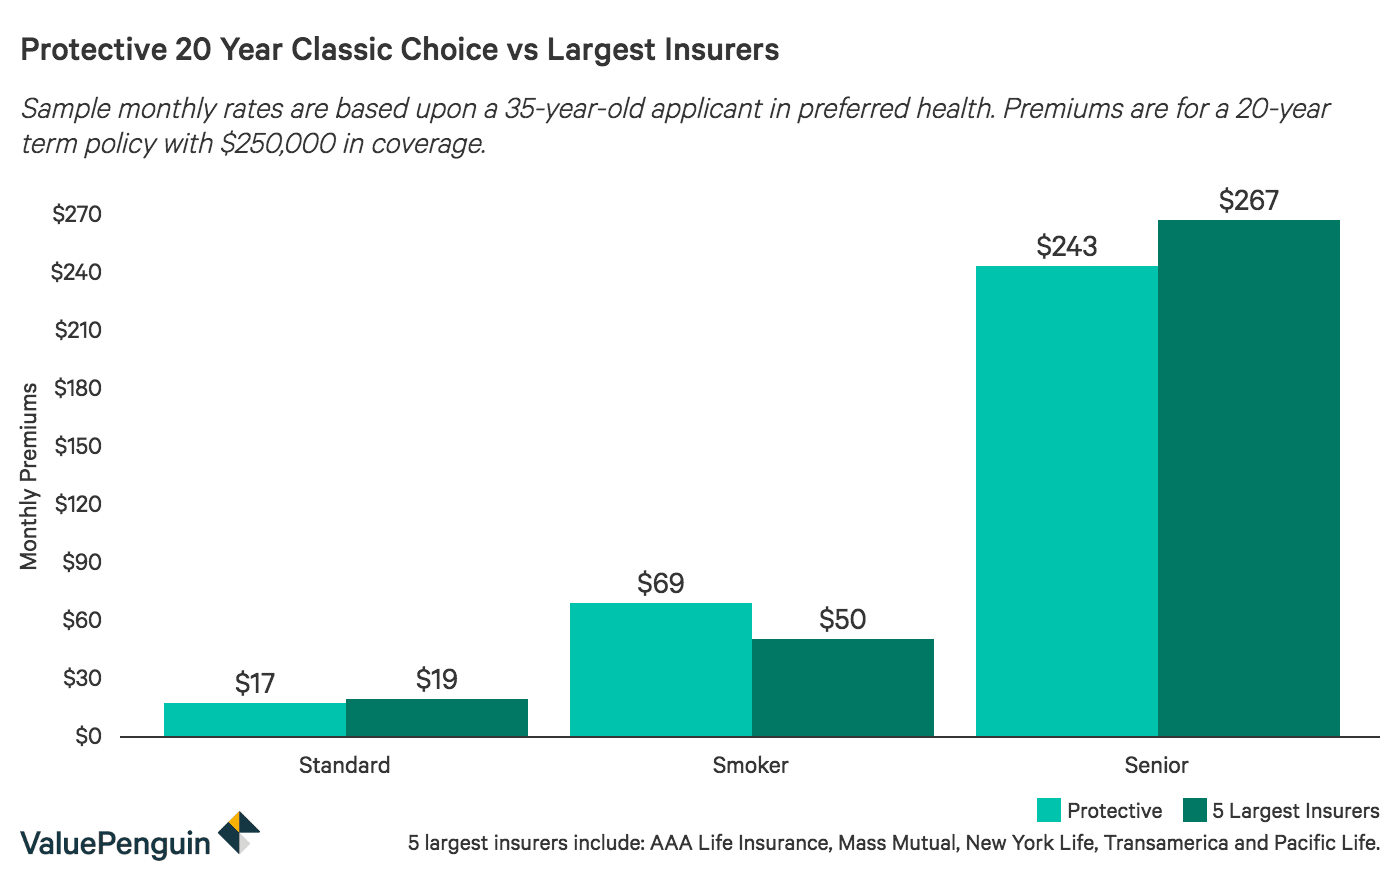 Protective vs Largest Insurers